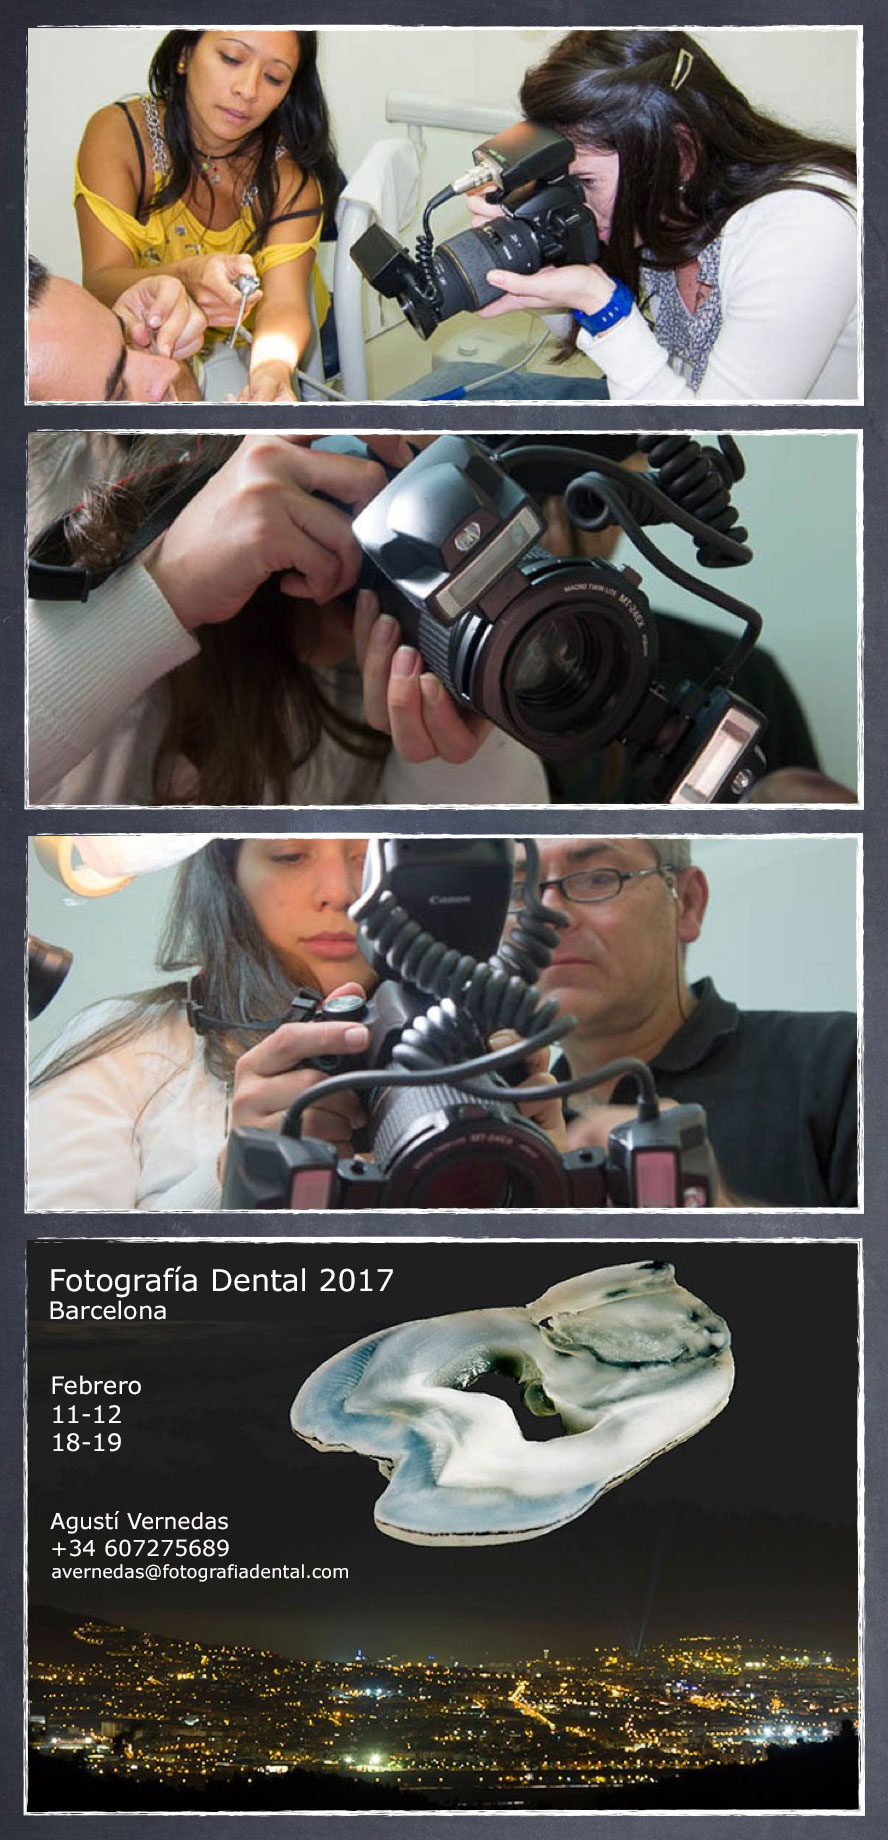 Curs-Foto-Dental-BCN-2017-Mail.jpg